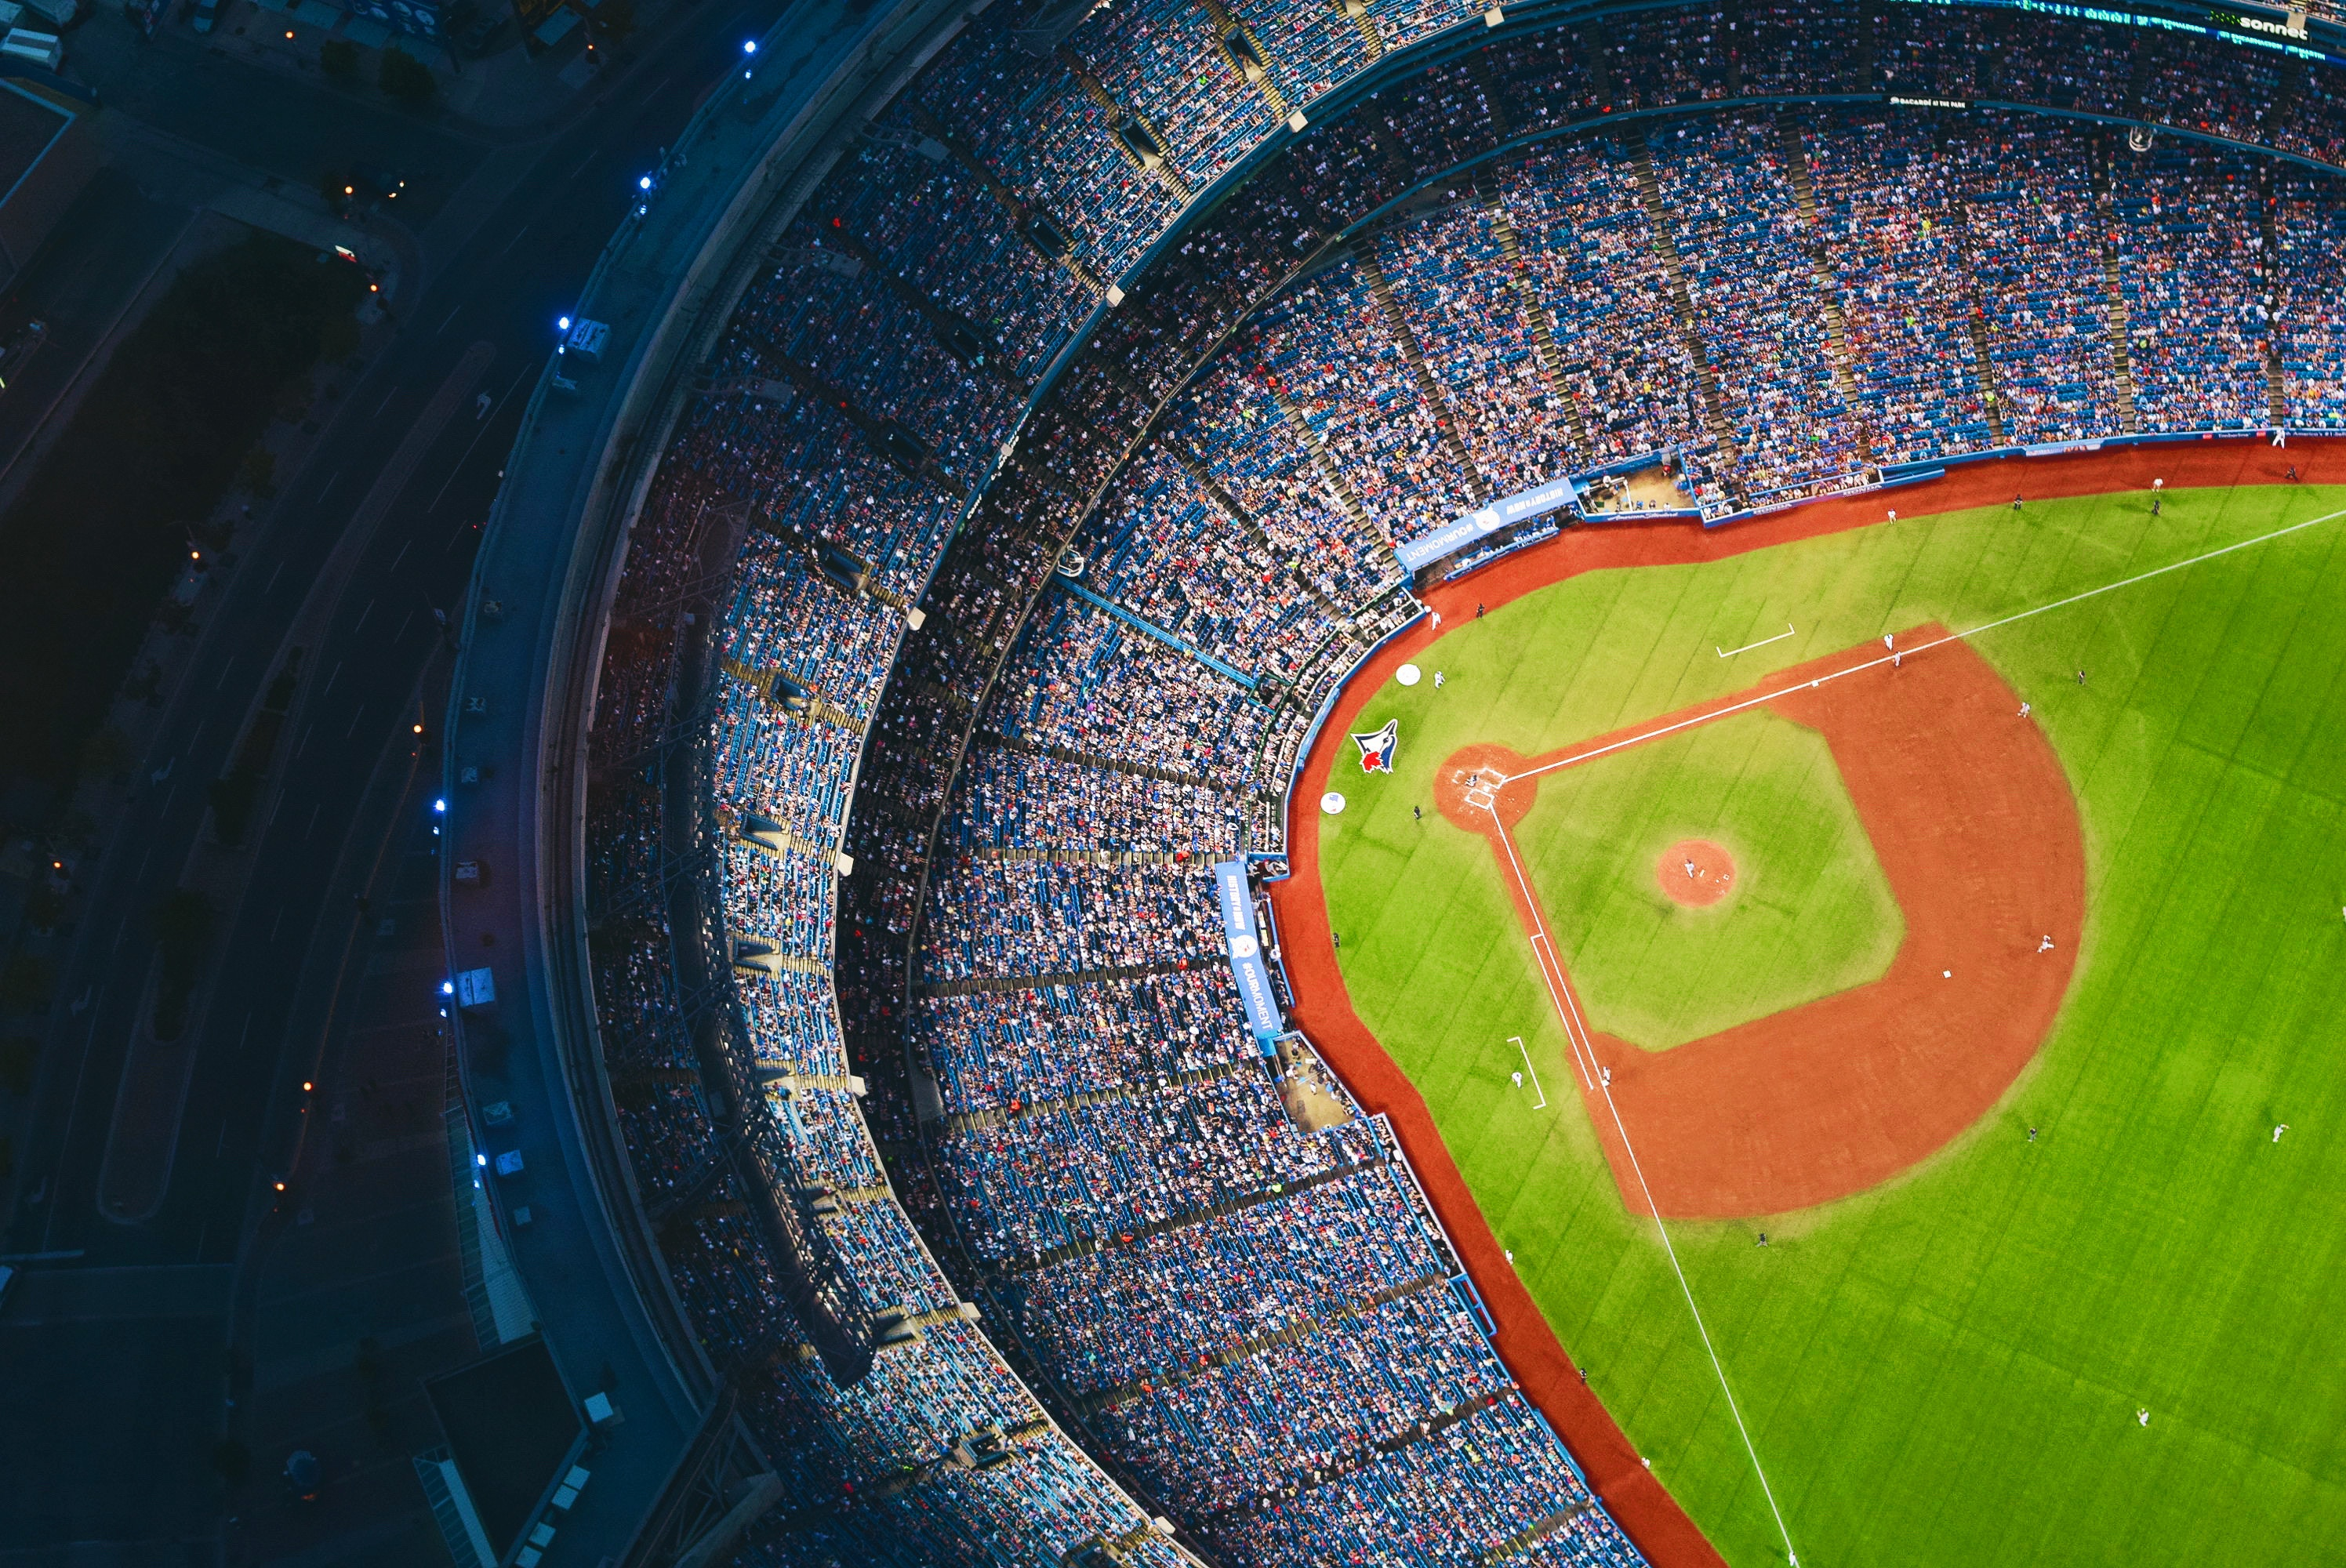 baseball diamond from Moneyball, data driven innovation